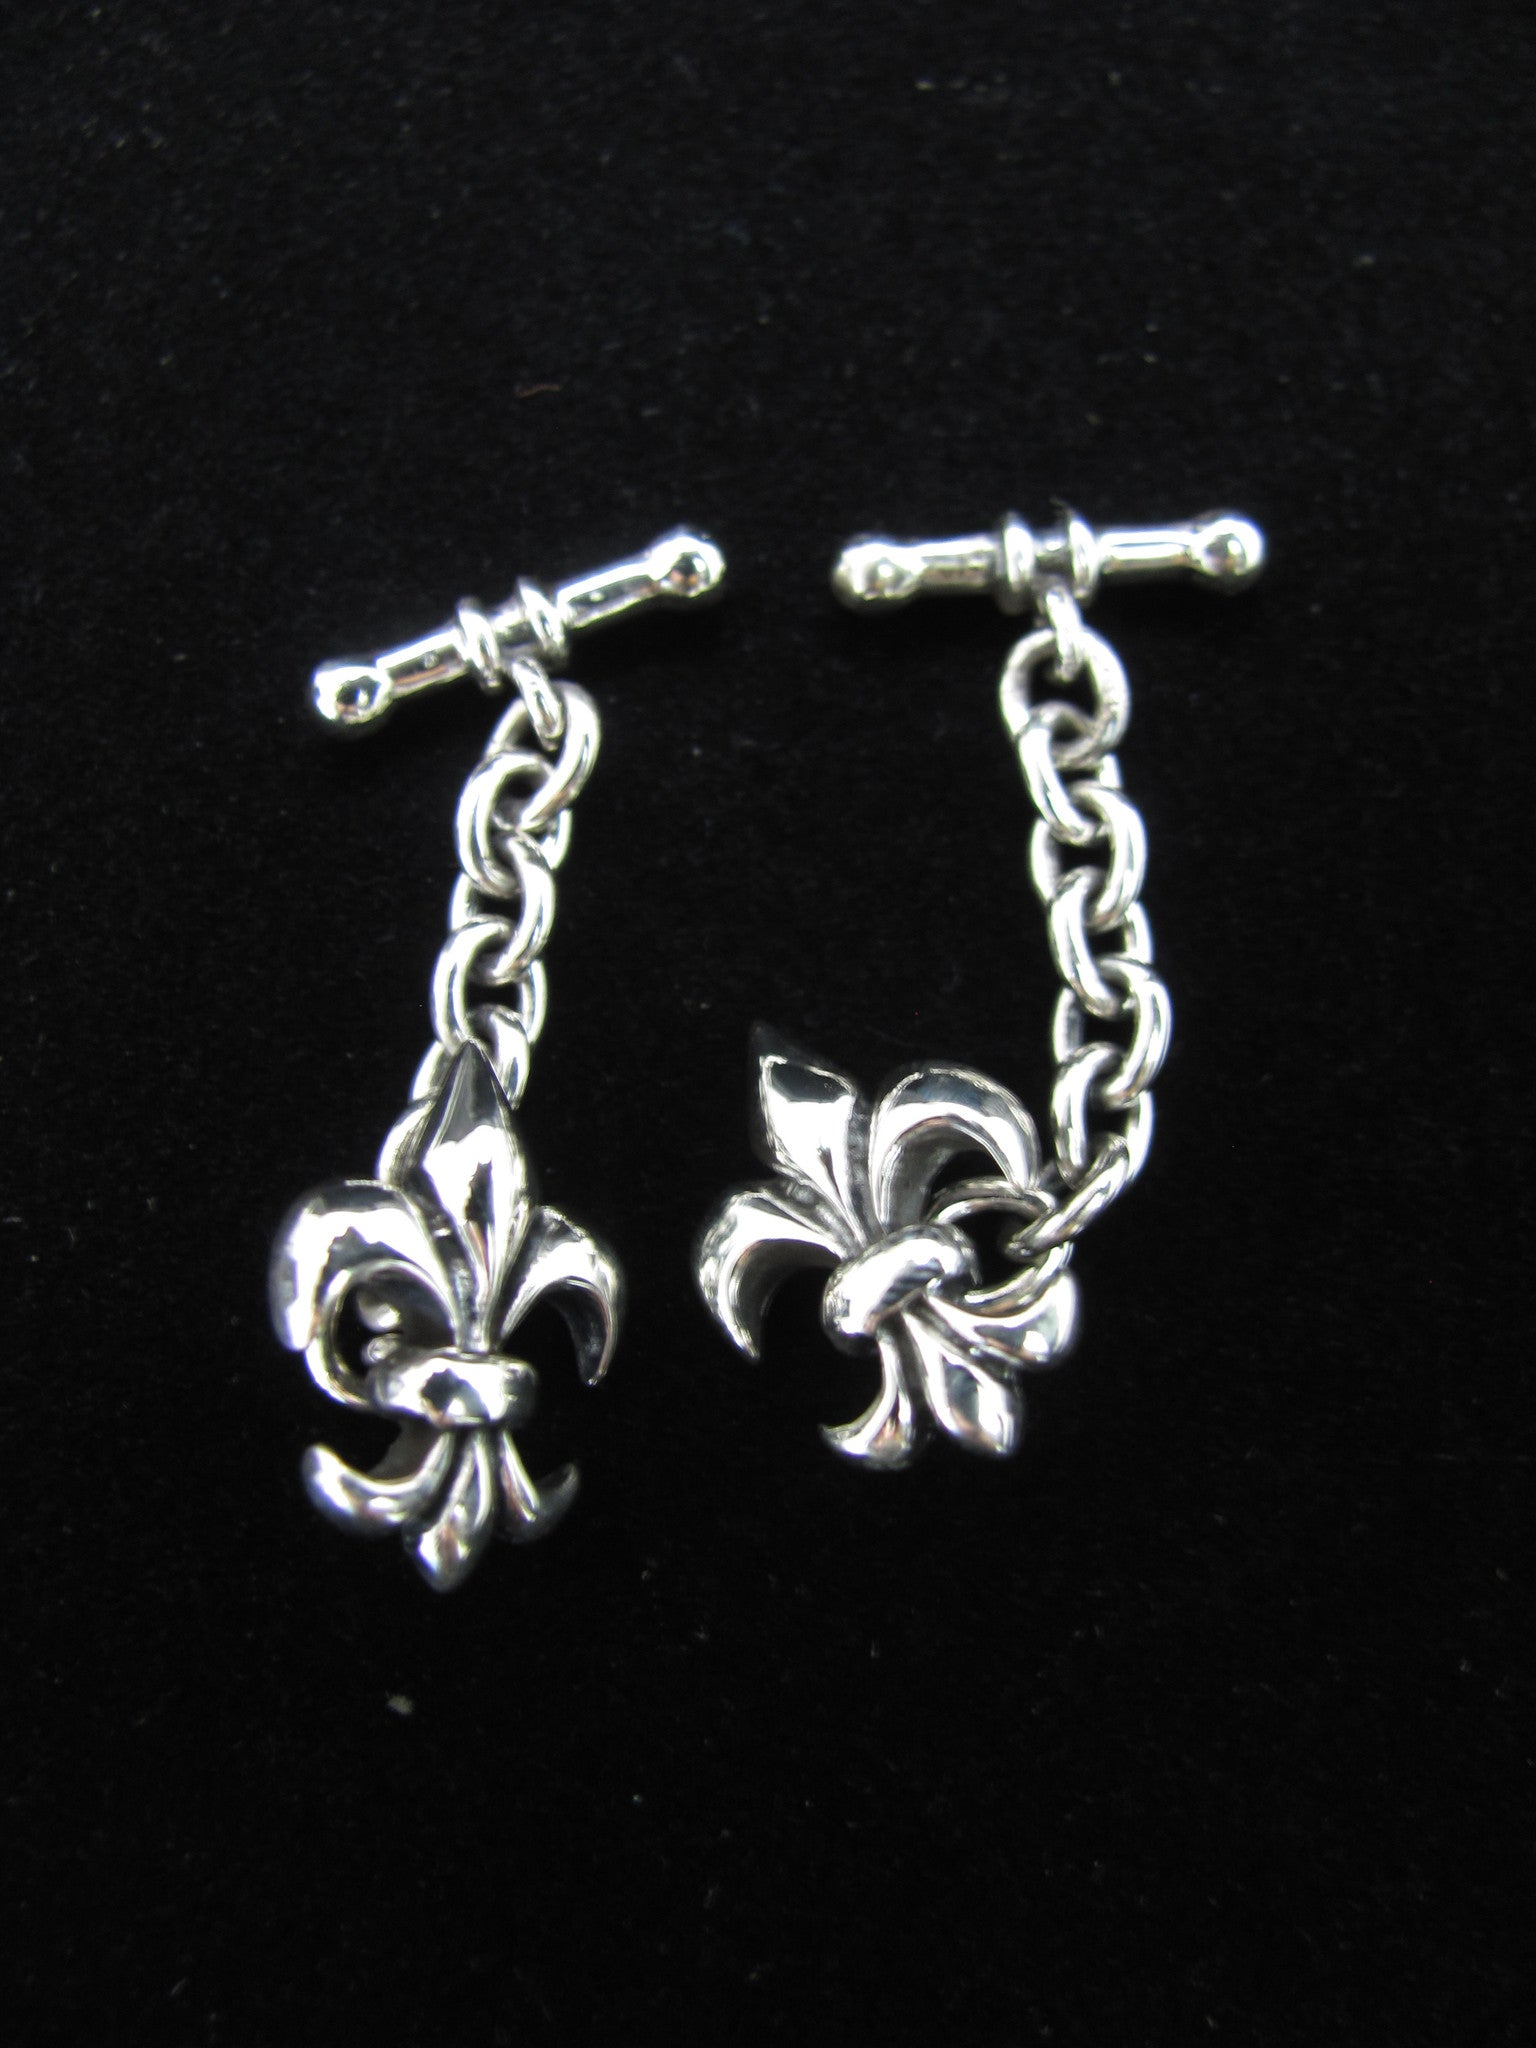 Fleur de lis cufflinks with chain